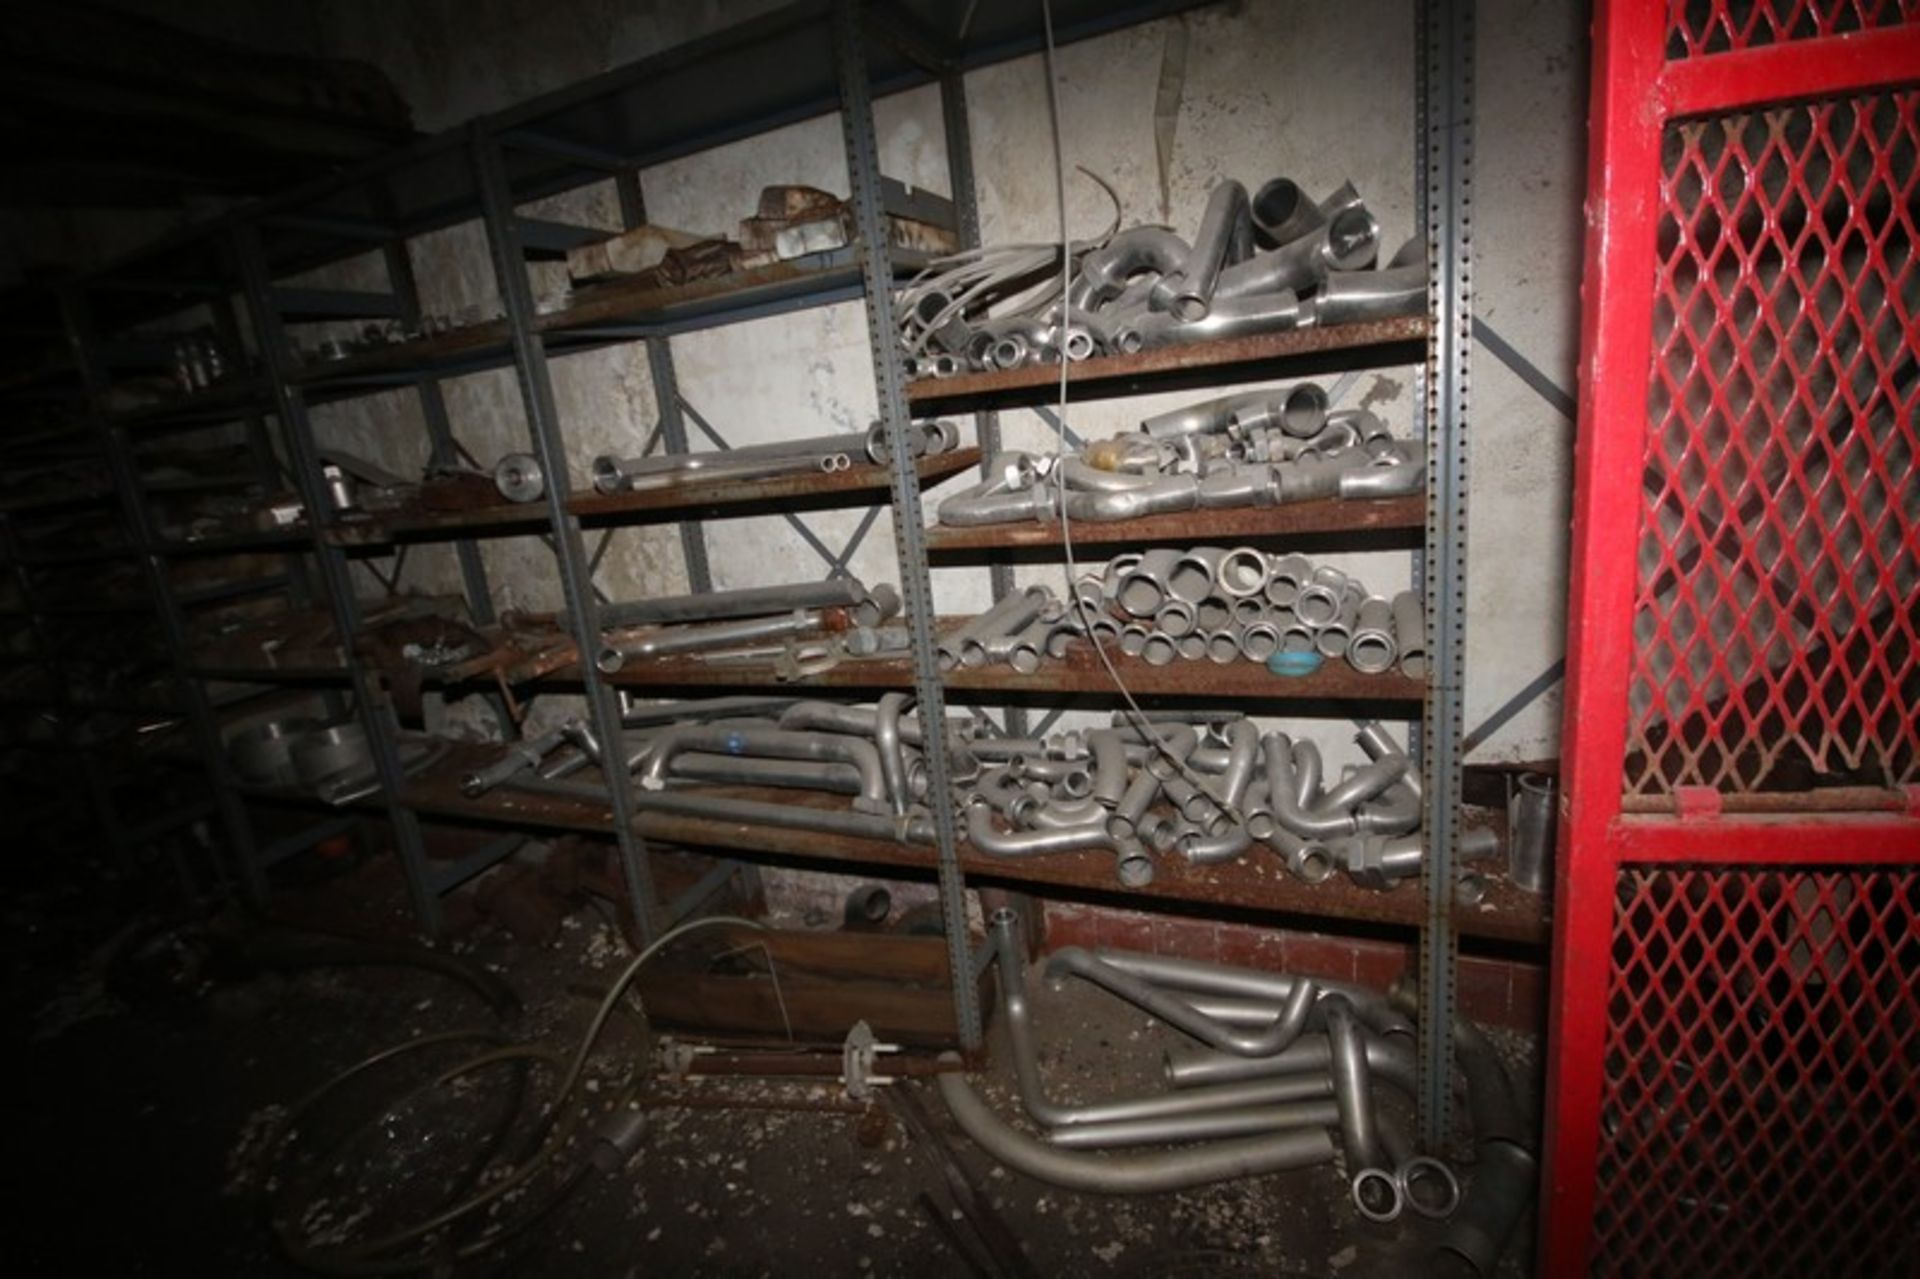 Contents of Parts Room, Includes Bearings, Stainless Steel Pipe, Motors, Belts, Electrical Wire, - Image 7 of 22